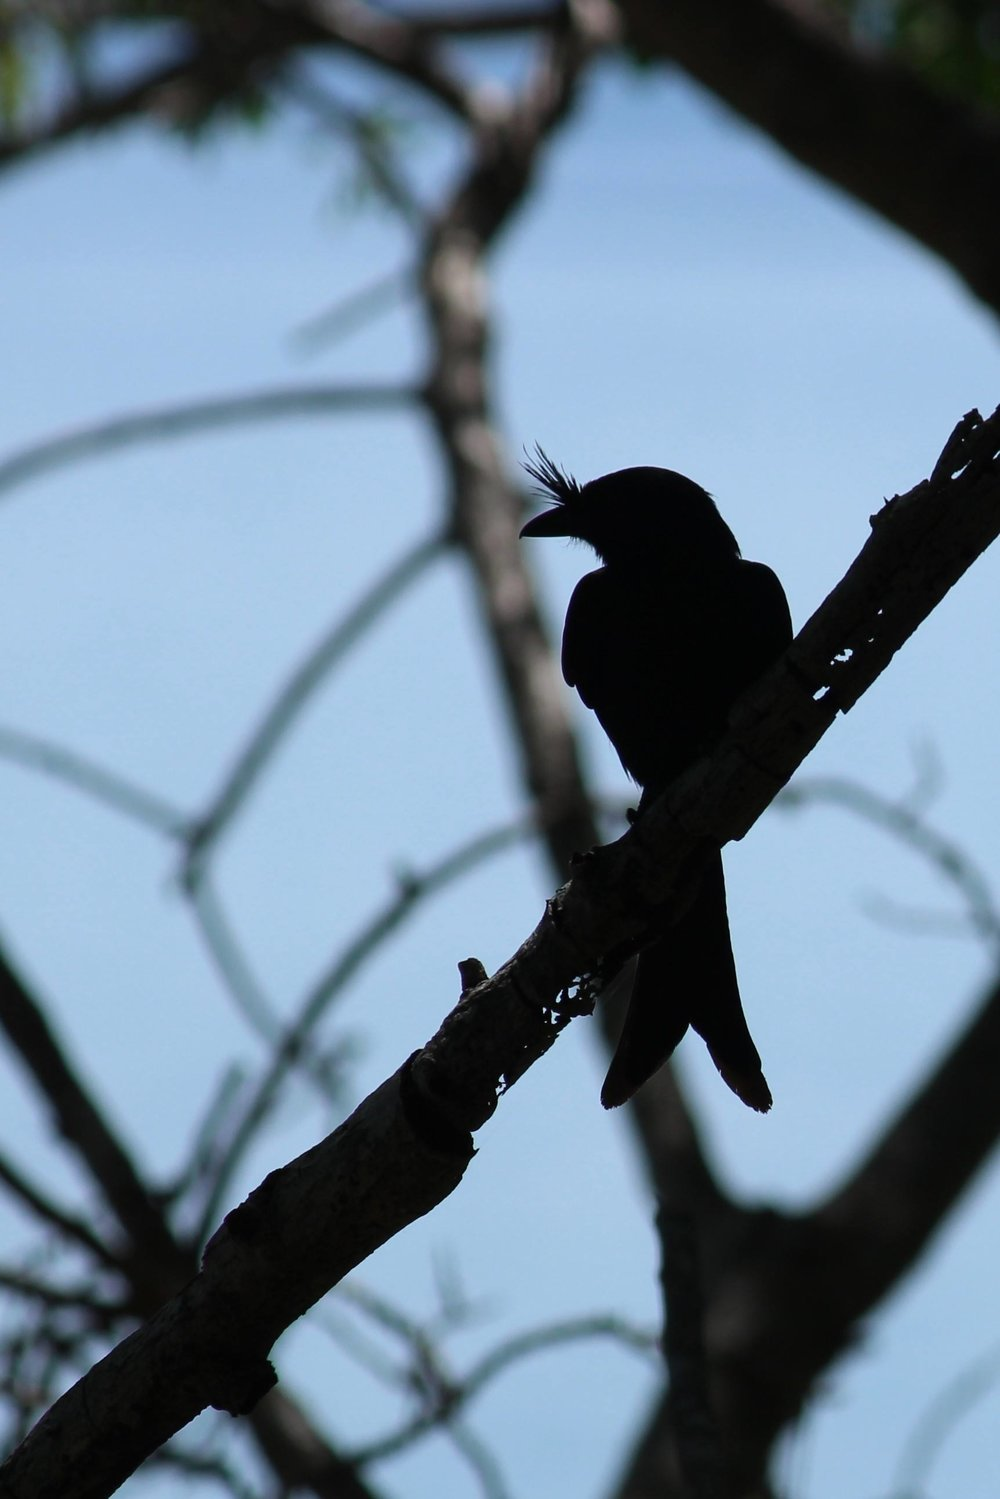 Madagascar Crested Drongo silhouette against the morning sky. Photo credit Lucy Prescott